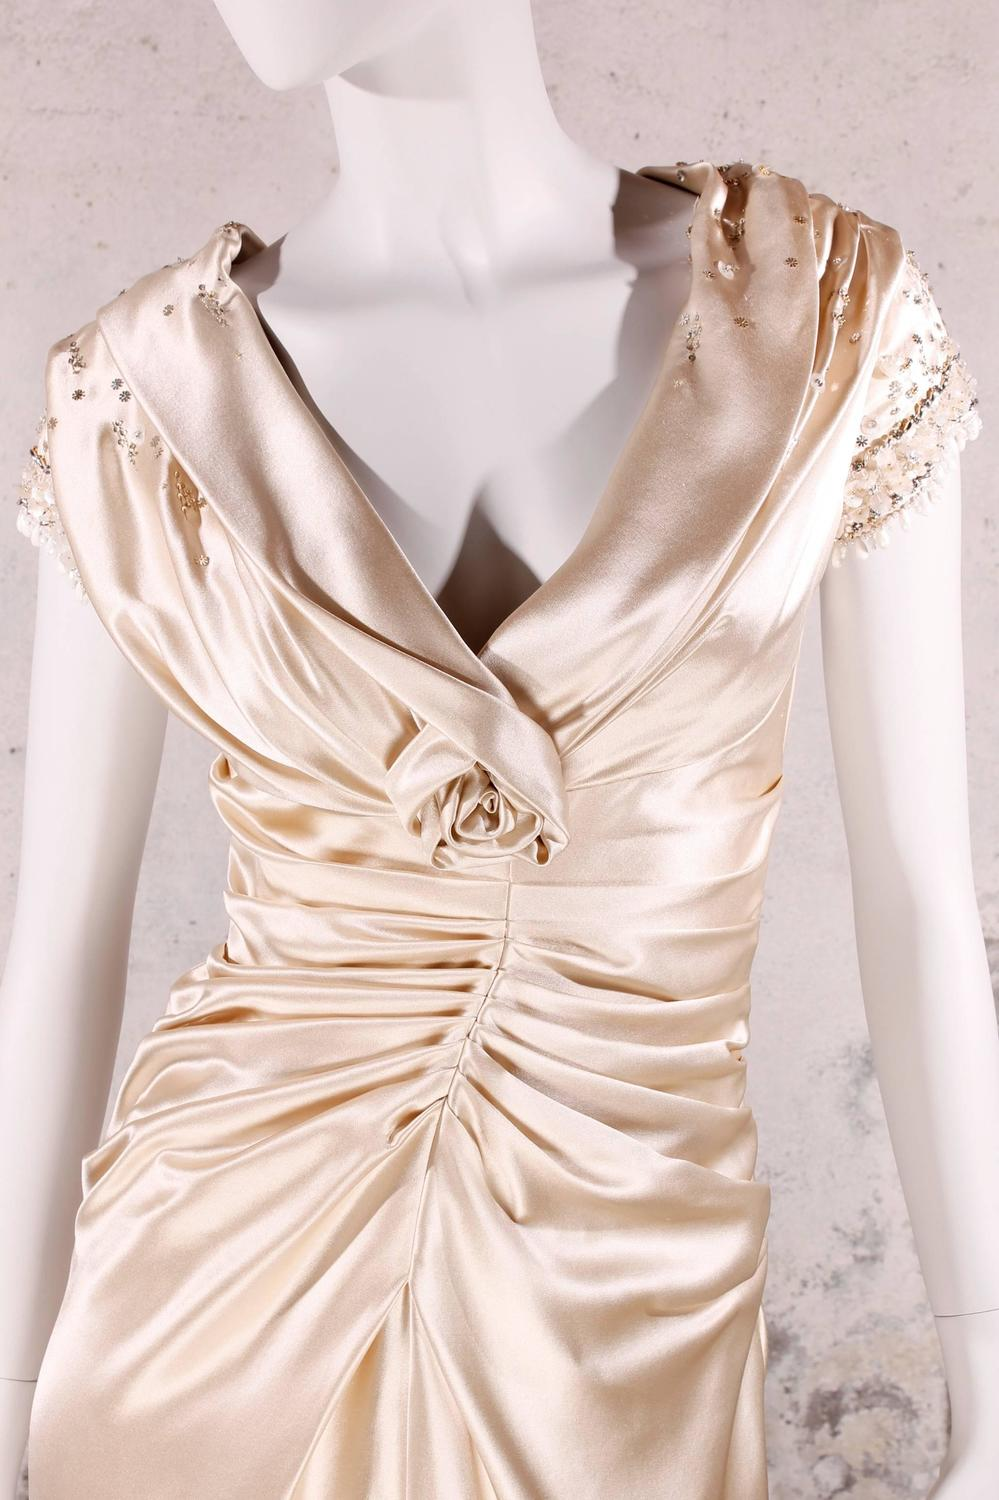 b3b53bb406 Christian Dior Champagne-colored Evening Gown at 1stdibs